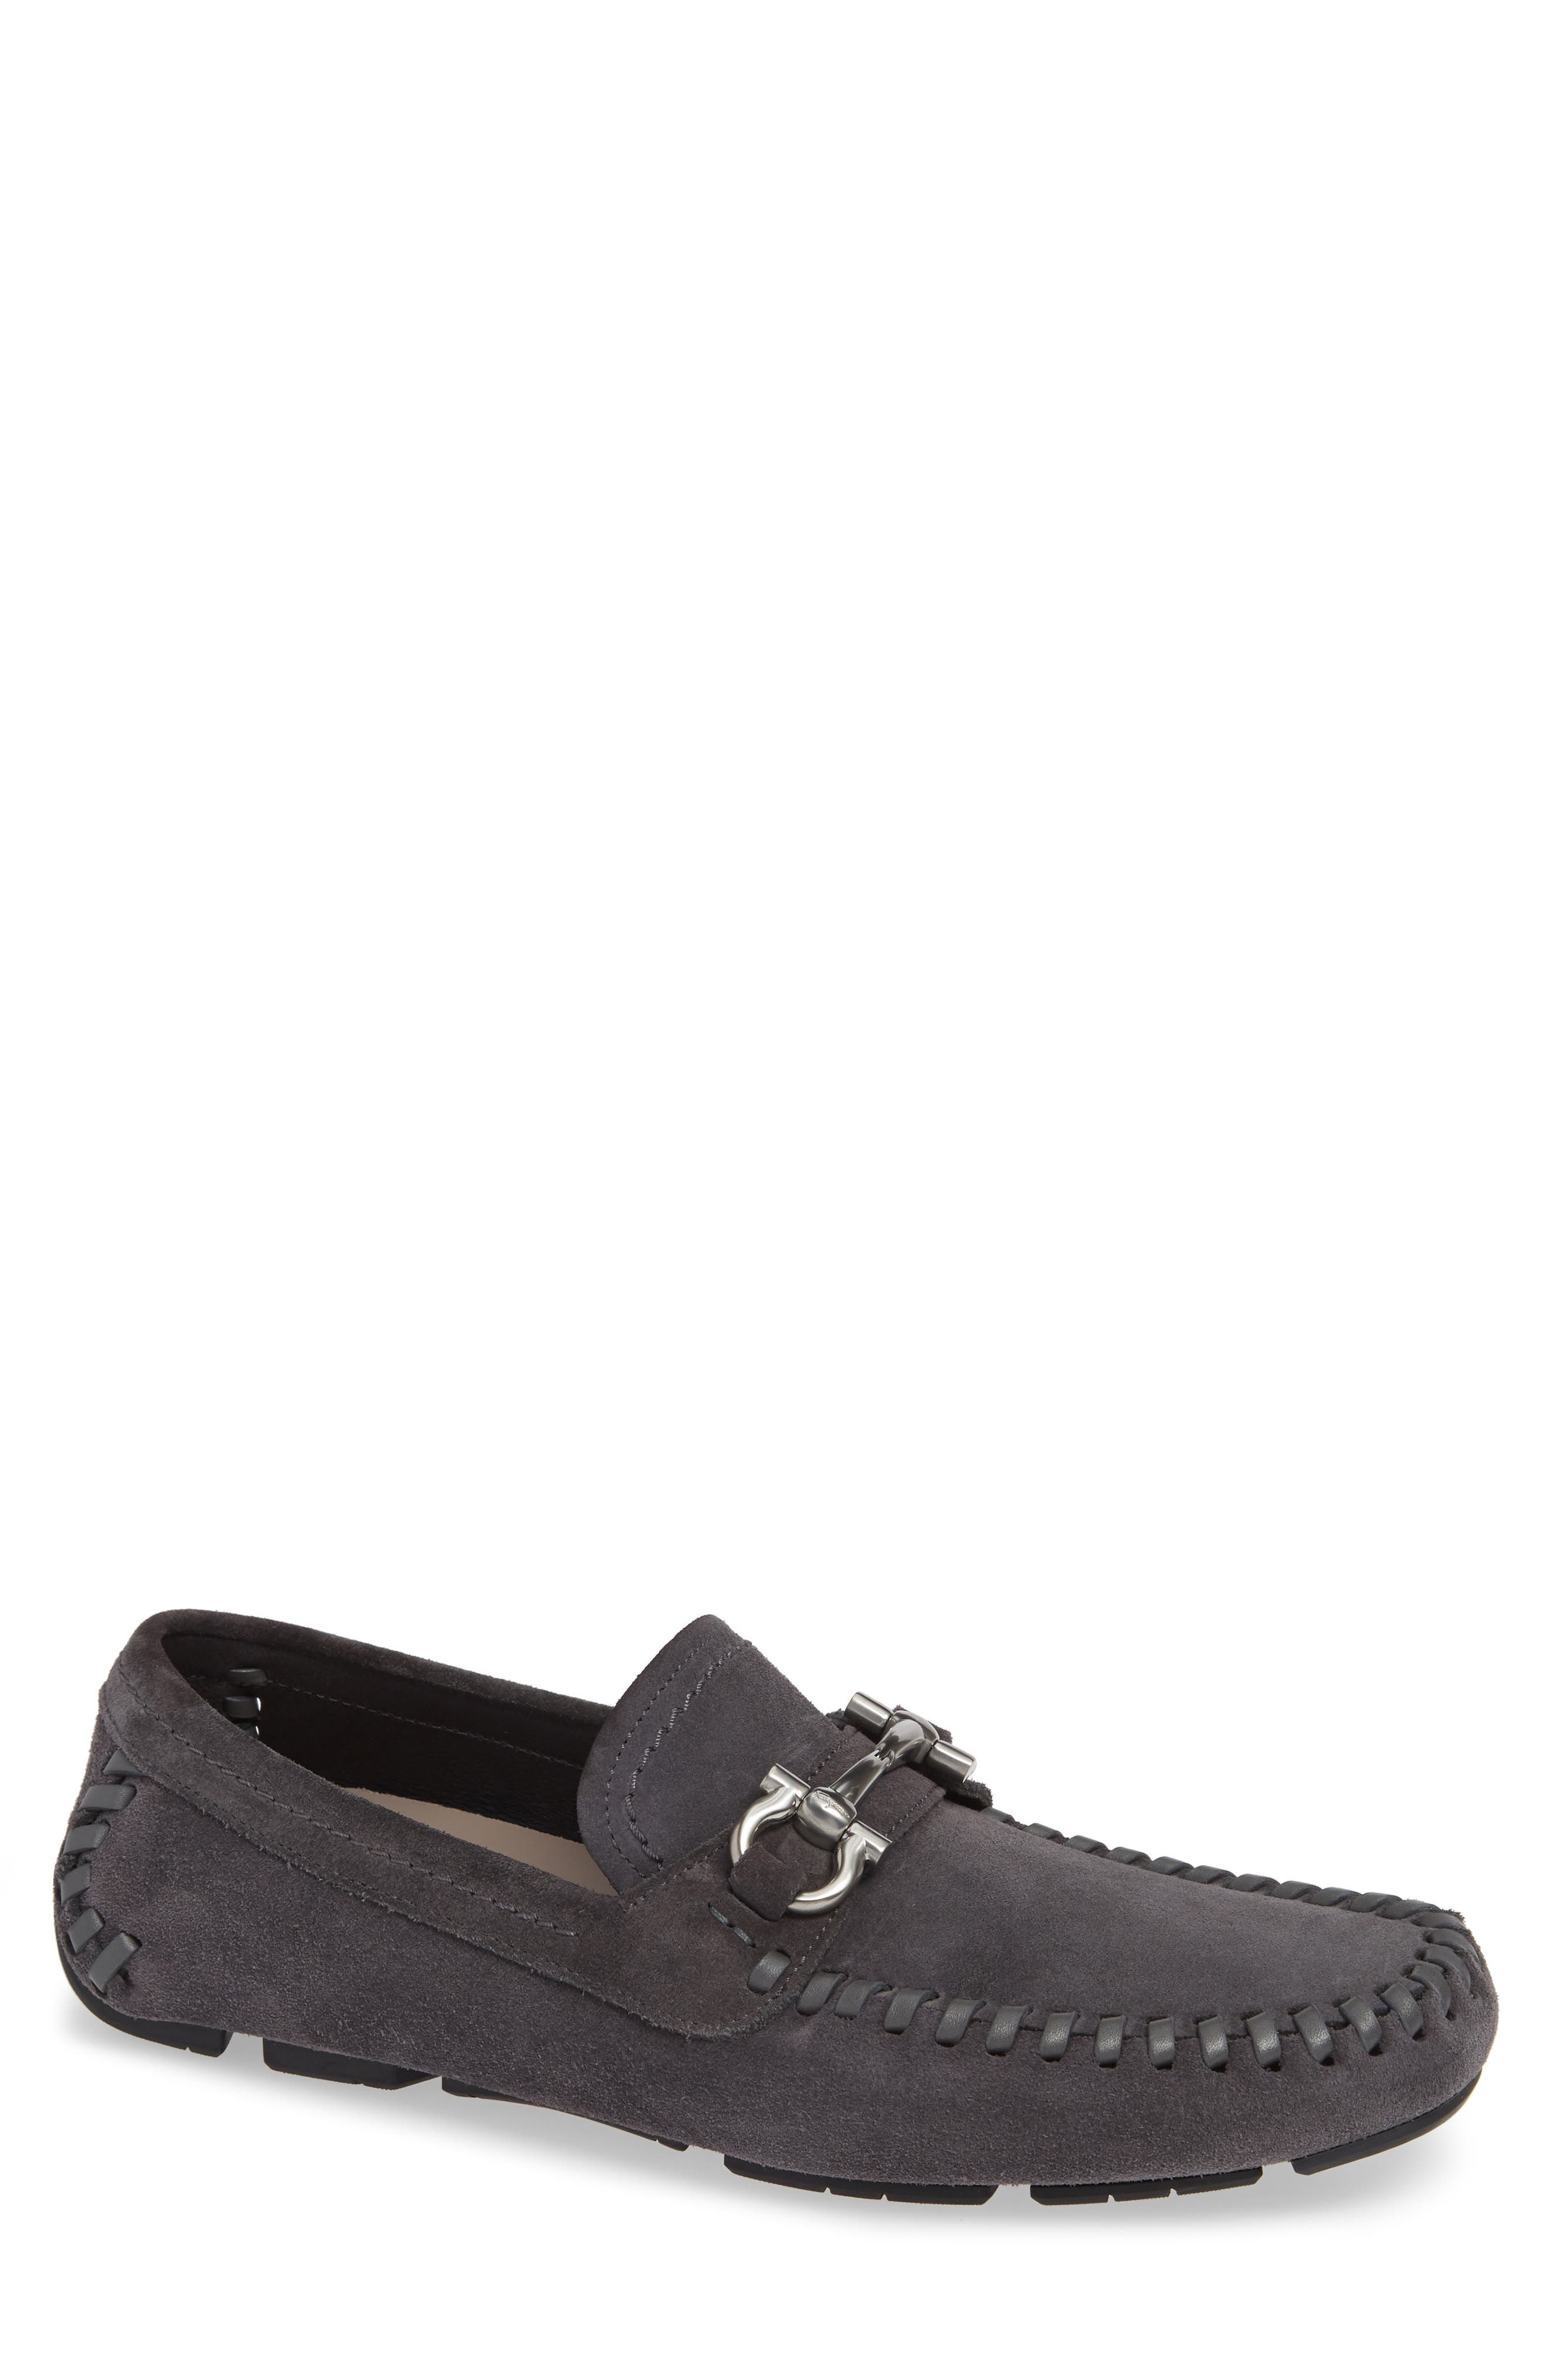 SALVATORE FERRAGAMO, Parigi Bit Driving Moccasin, Main thumbnail 1, color, ASFALTO NERO